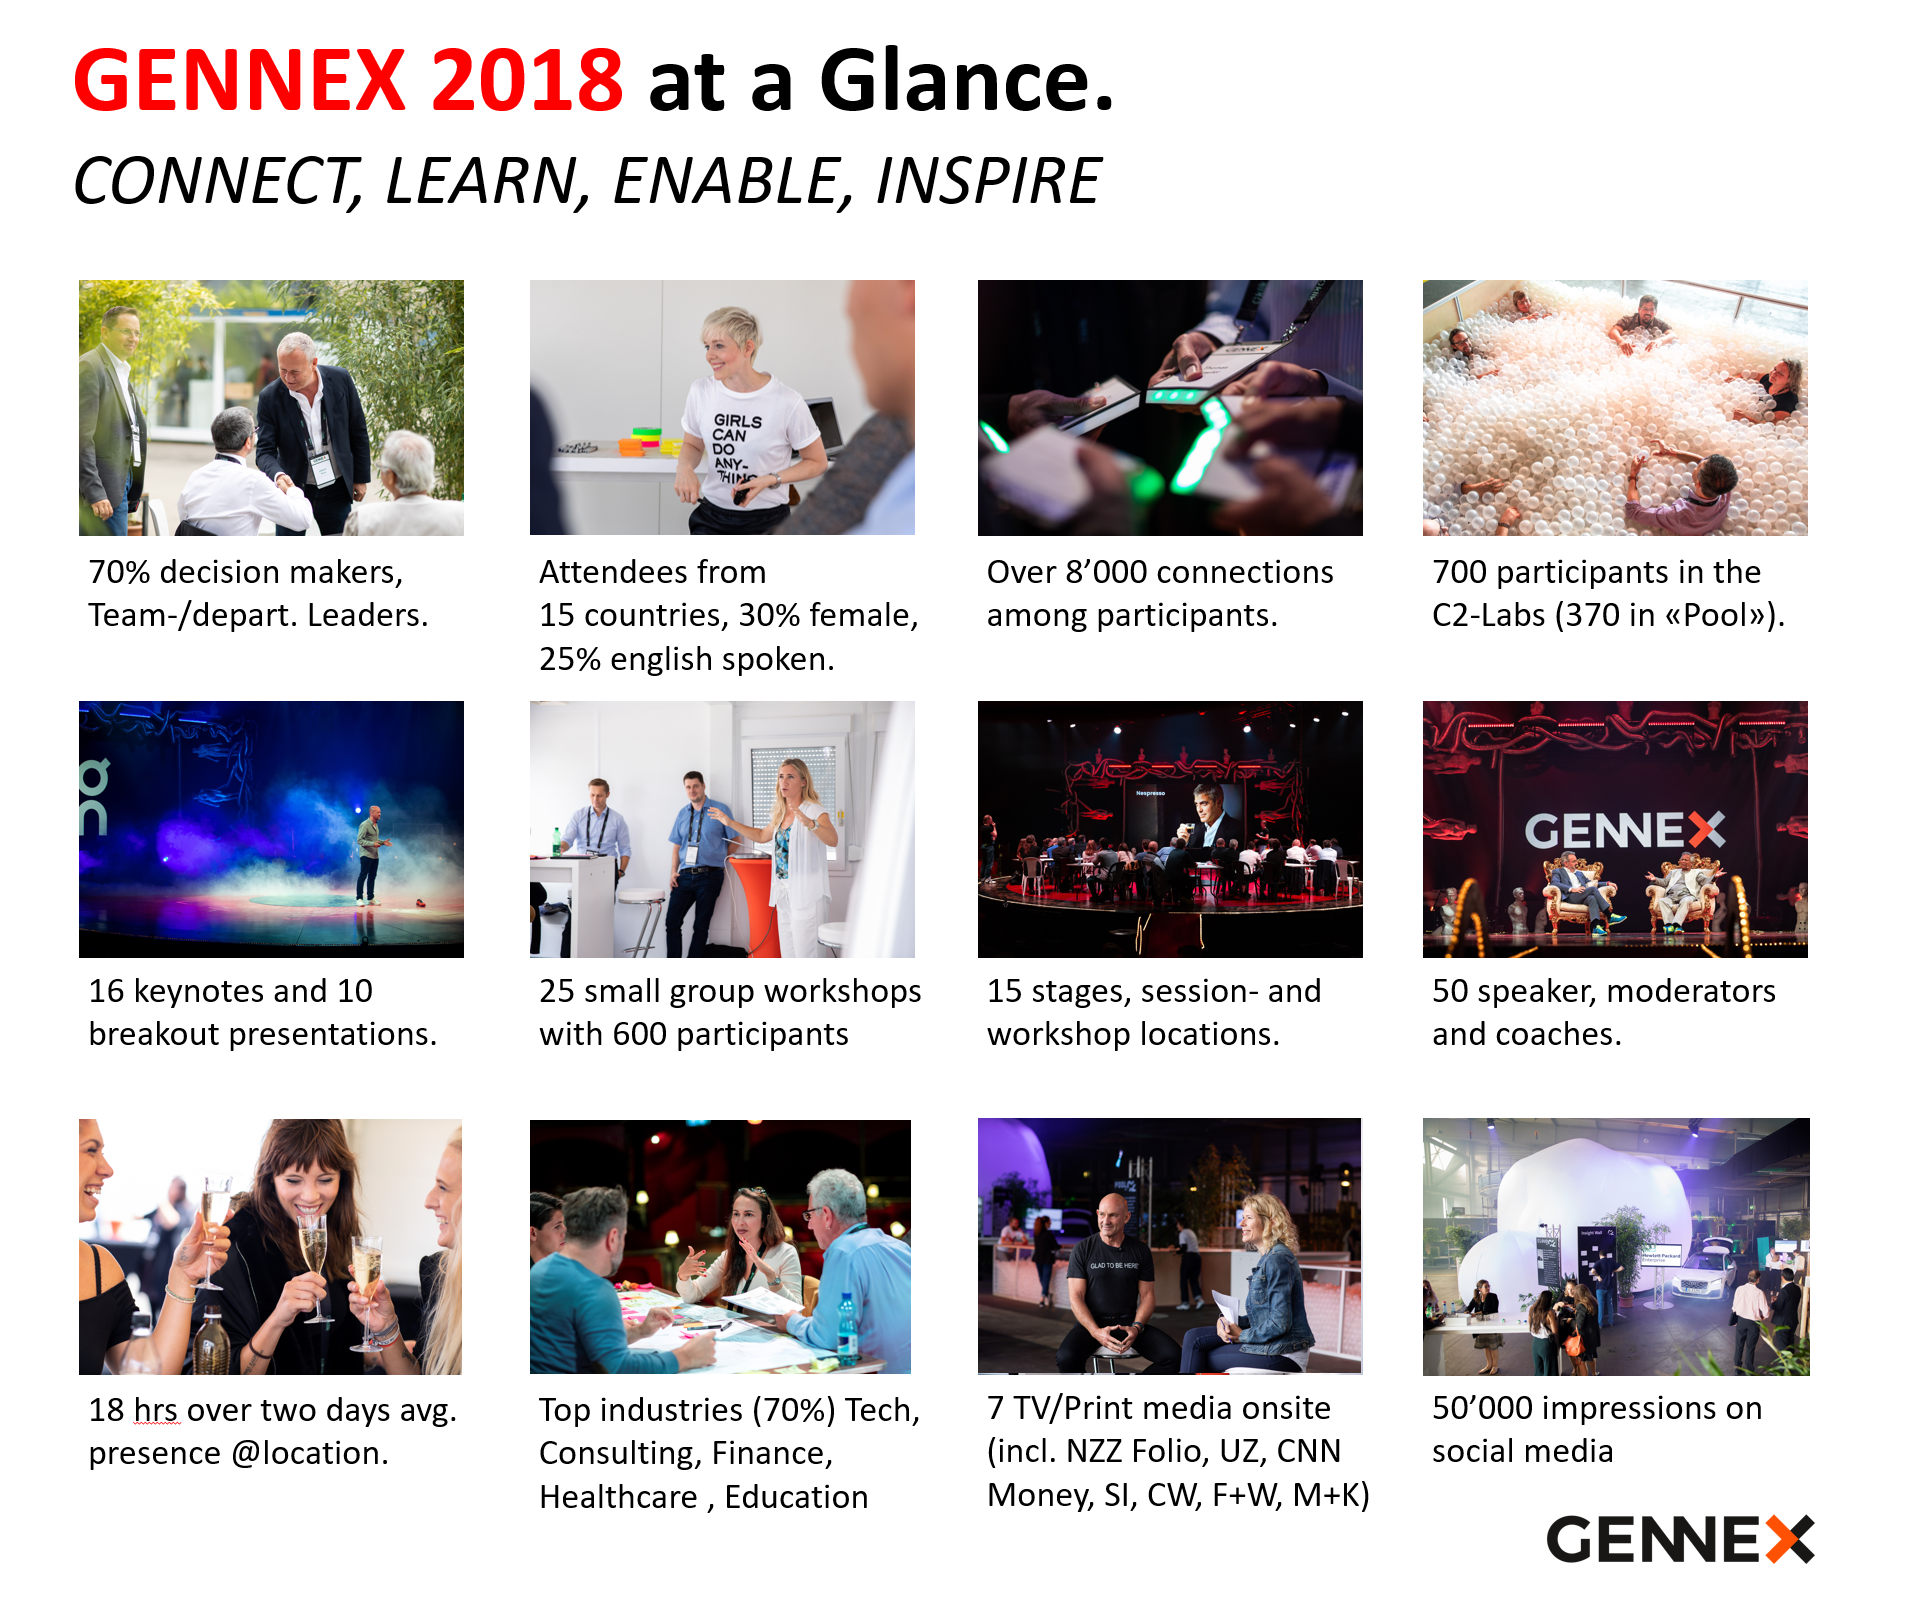 (c) GENNEX 2018 - InspiredView GmbH & Gregory Knie Entertainment AG. Pictures: Sarah Vonesch Photography